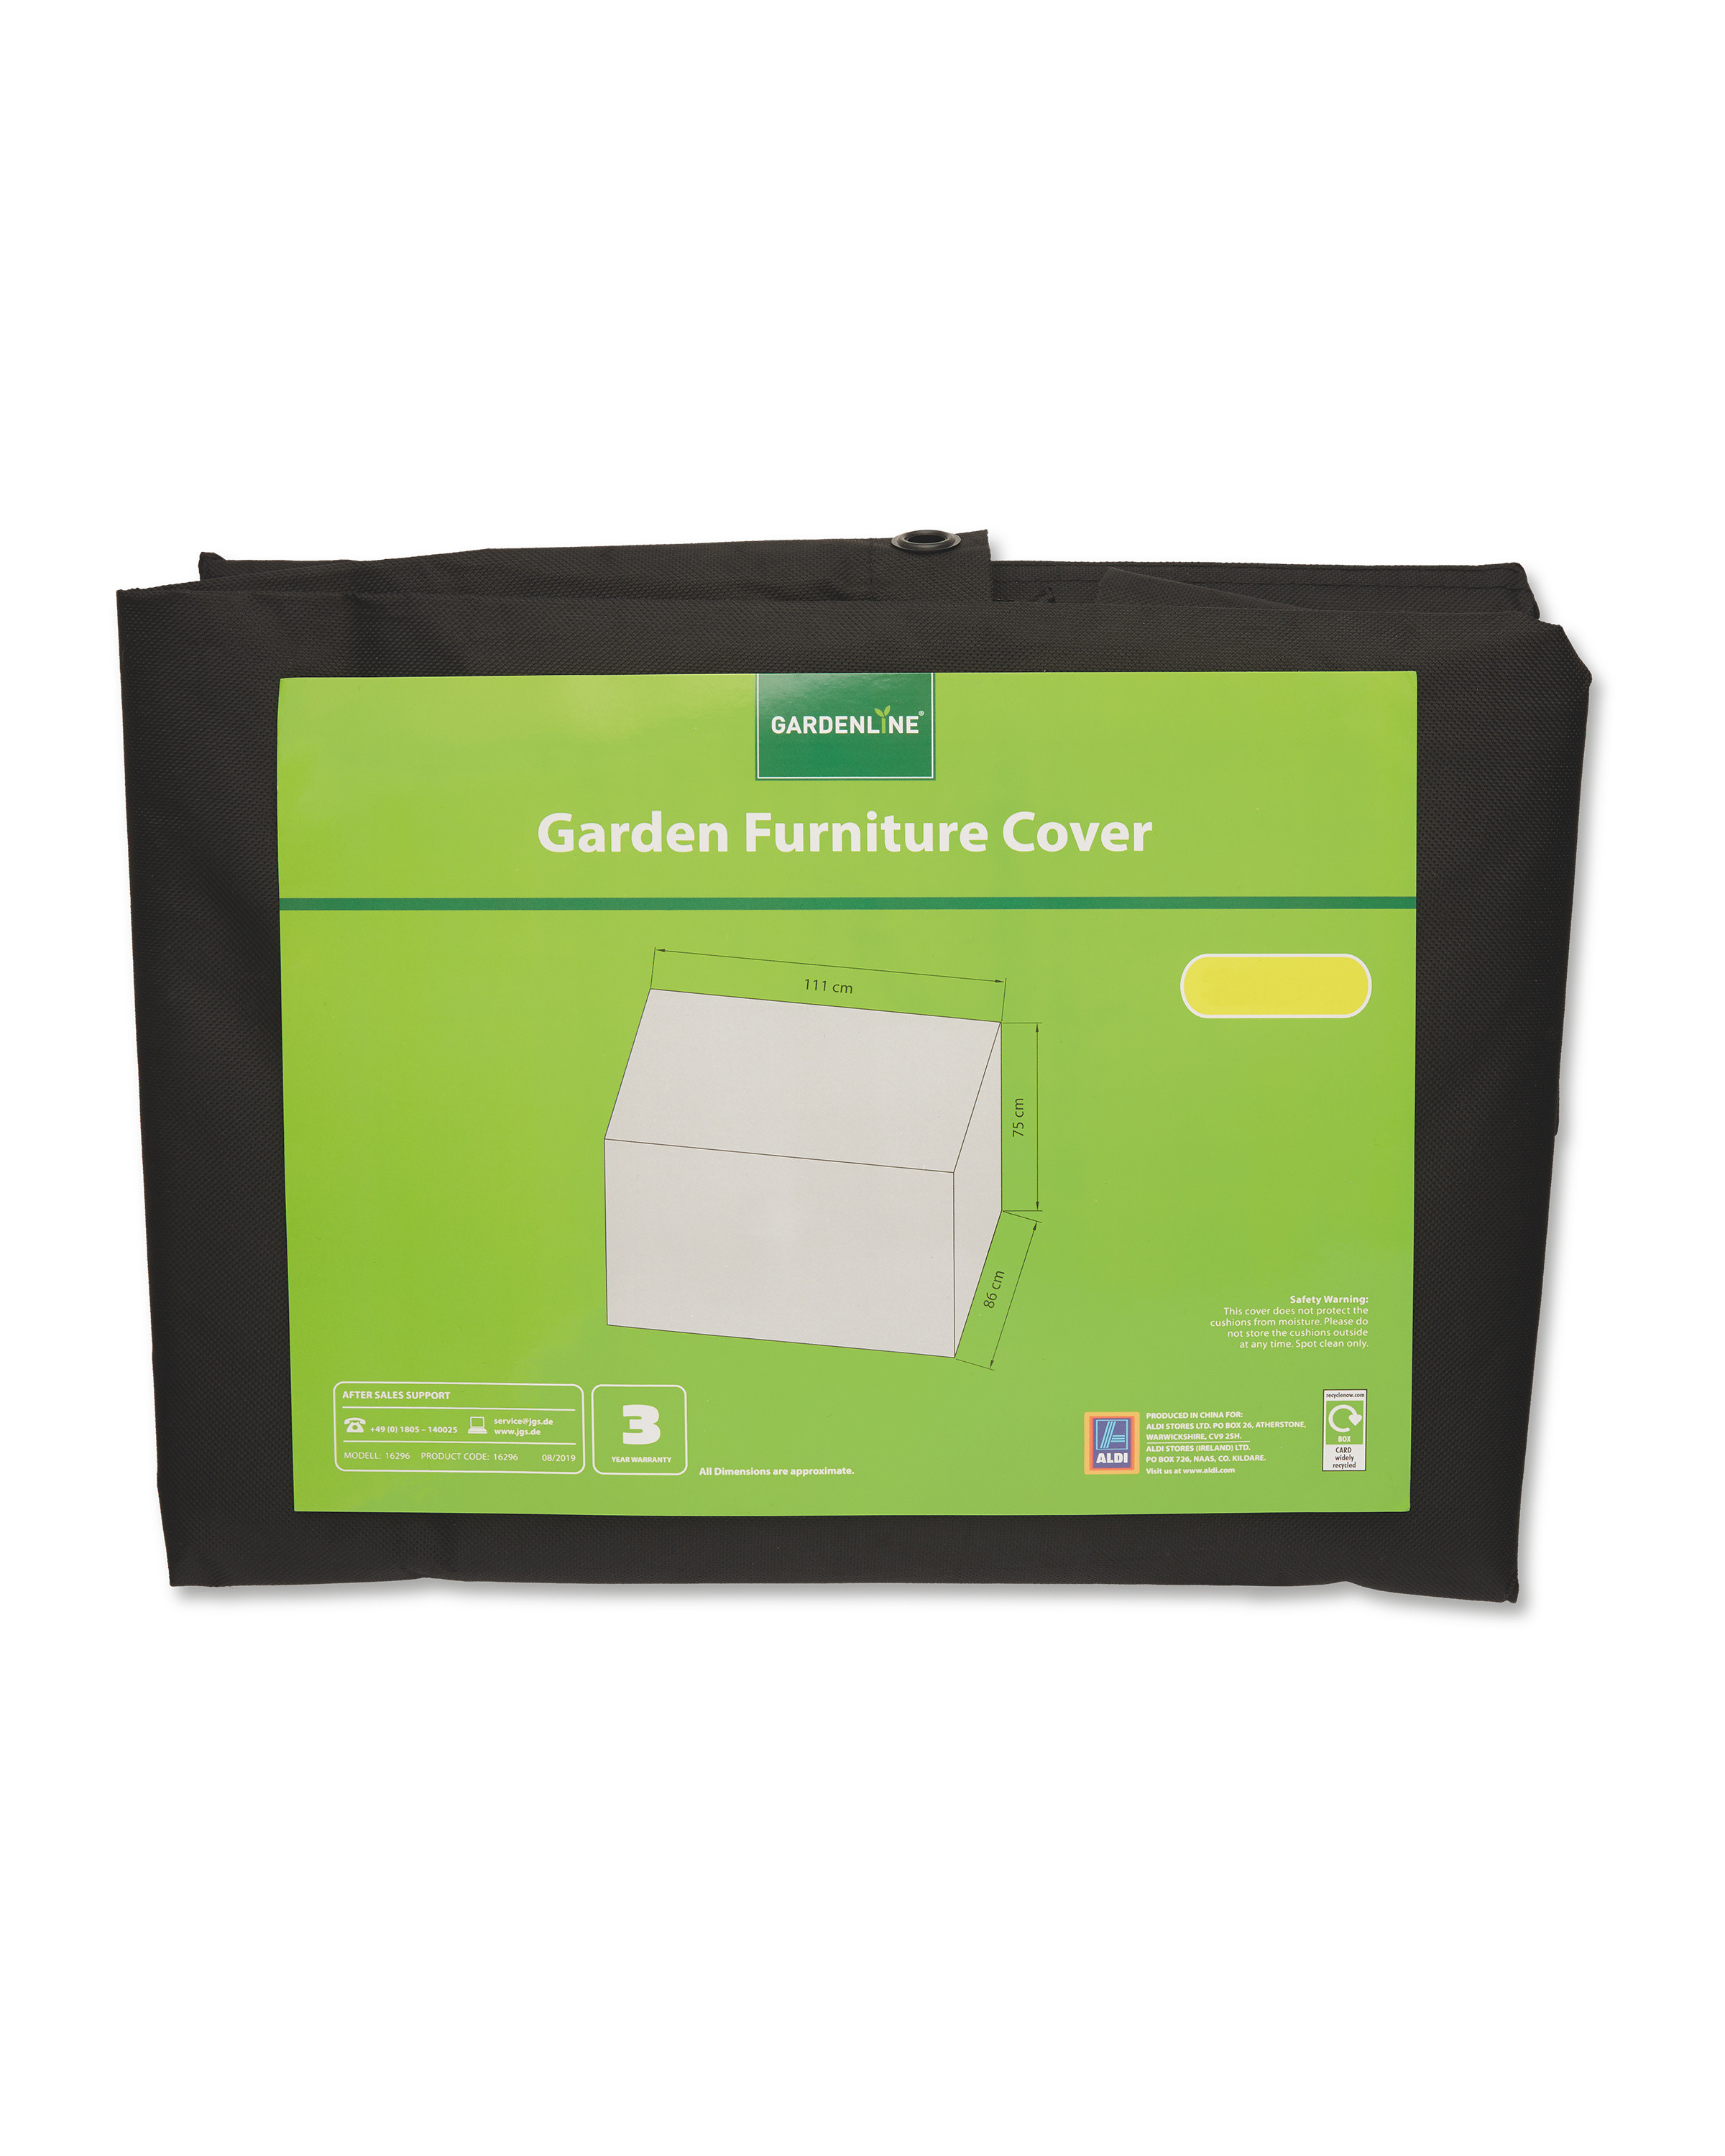 Universal Garden Furniture Cover Aldi Uk